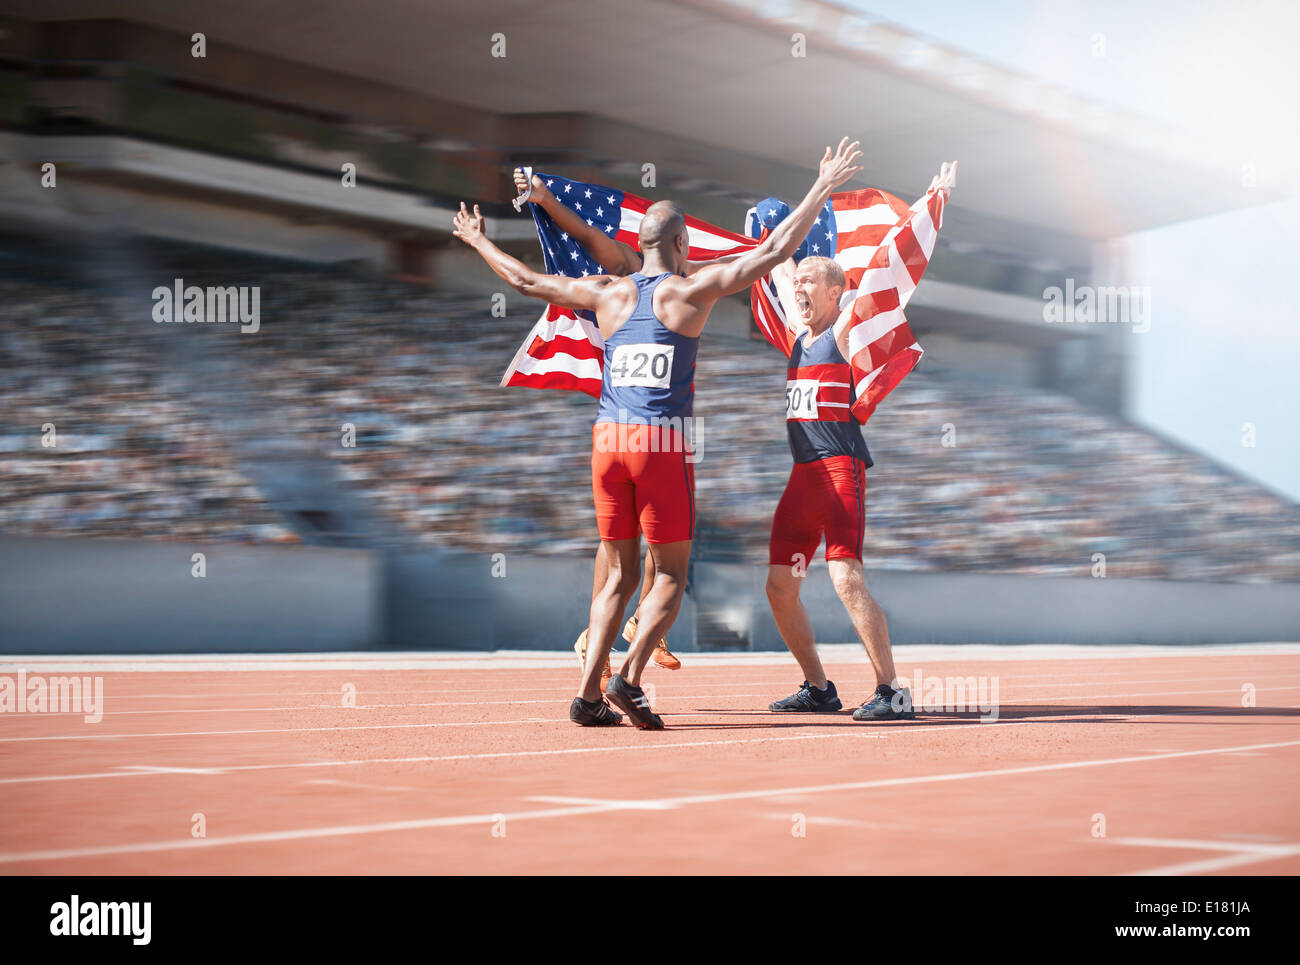 Runners celebrating and holding American flags on track - Stock Image